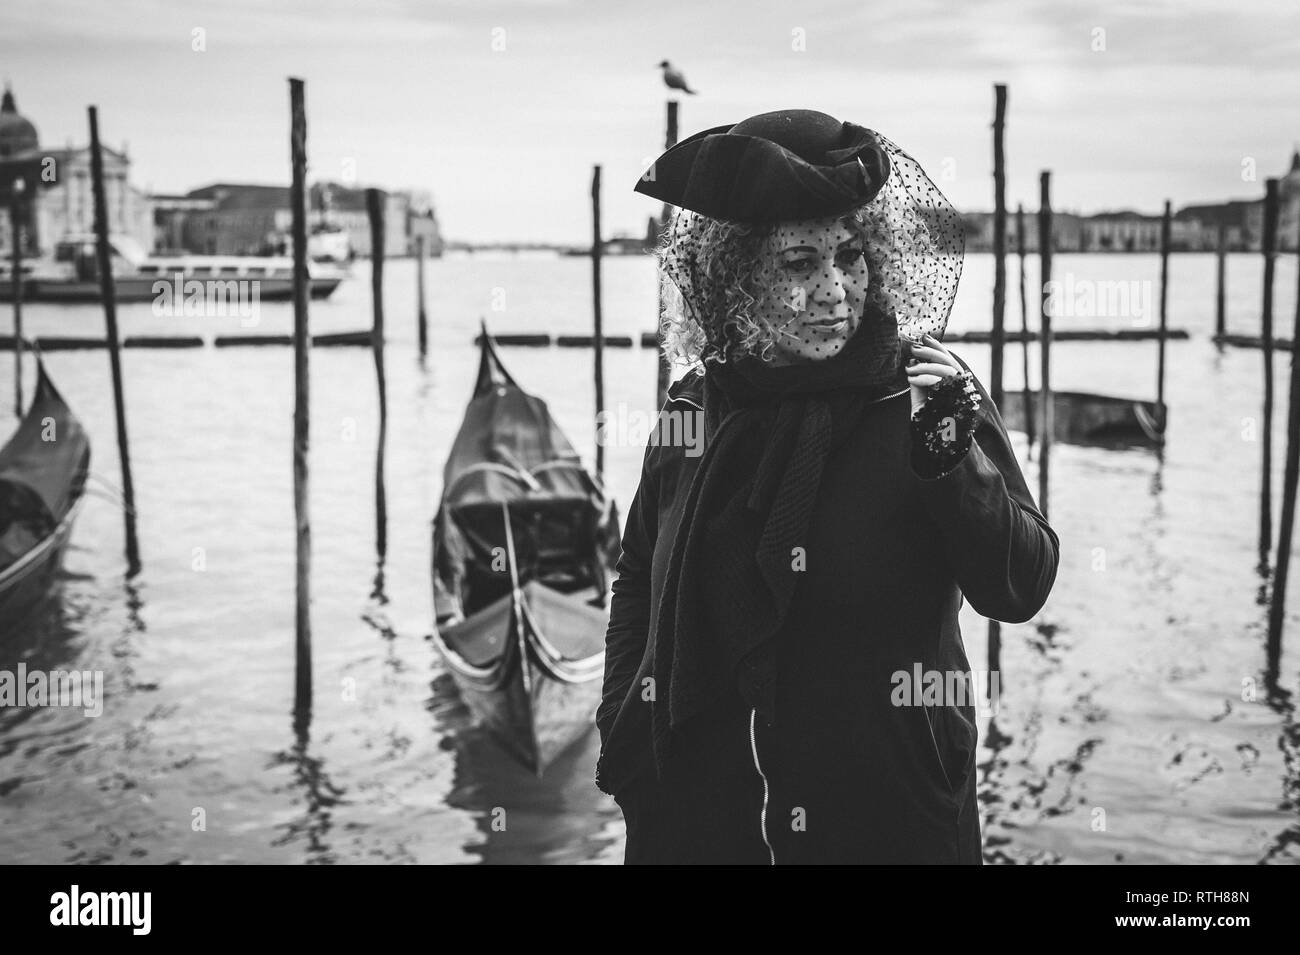 Carnival masked woman standing close to the venetian lagoon in a black and white portrait image - Stock Image